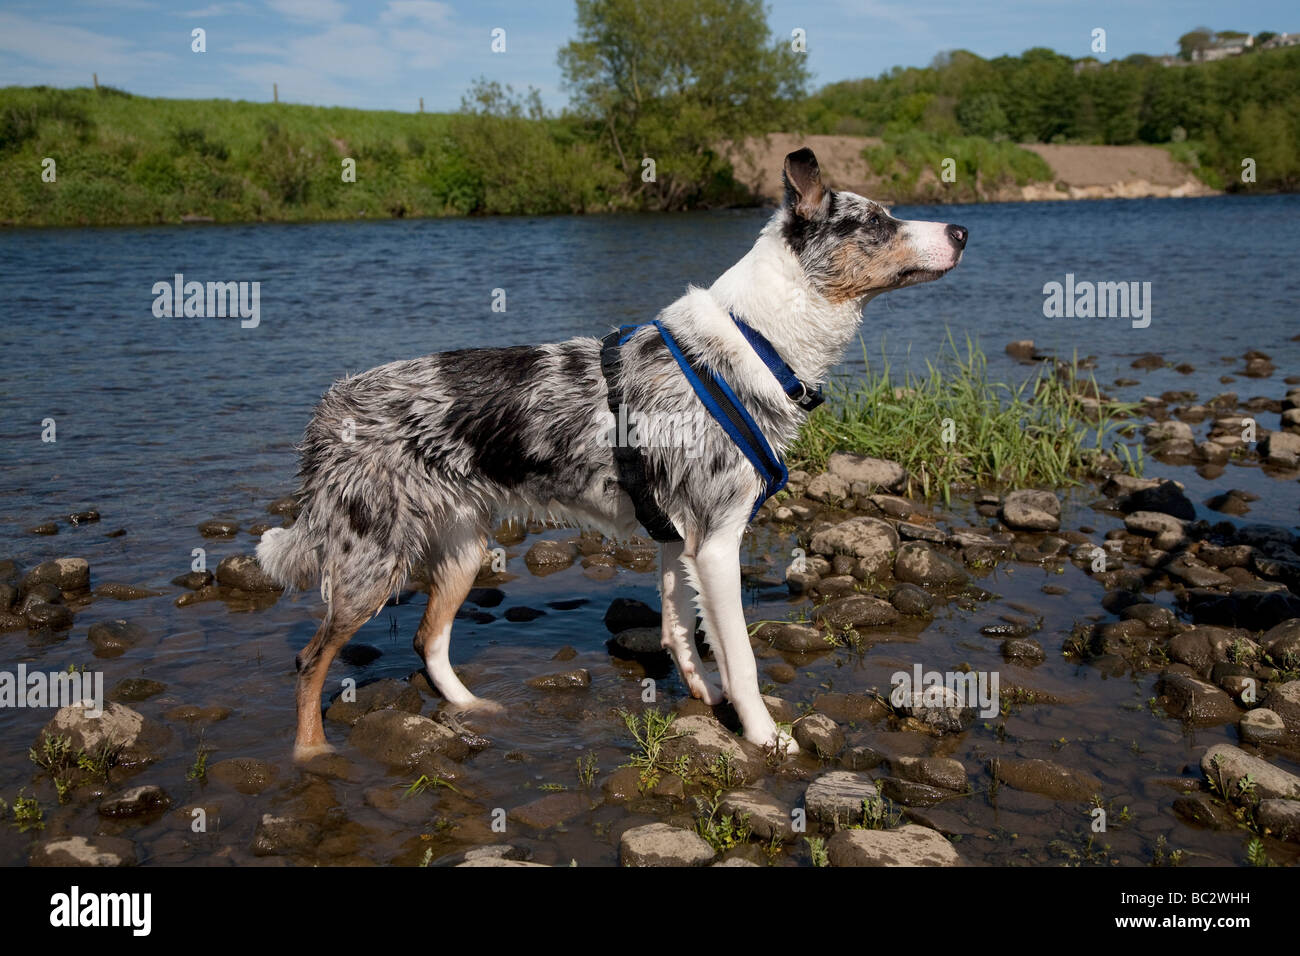 Blue merle border collie dog wearing a blue harness stood in a rocky river on a sunny summer day - Stock Image